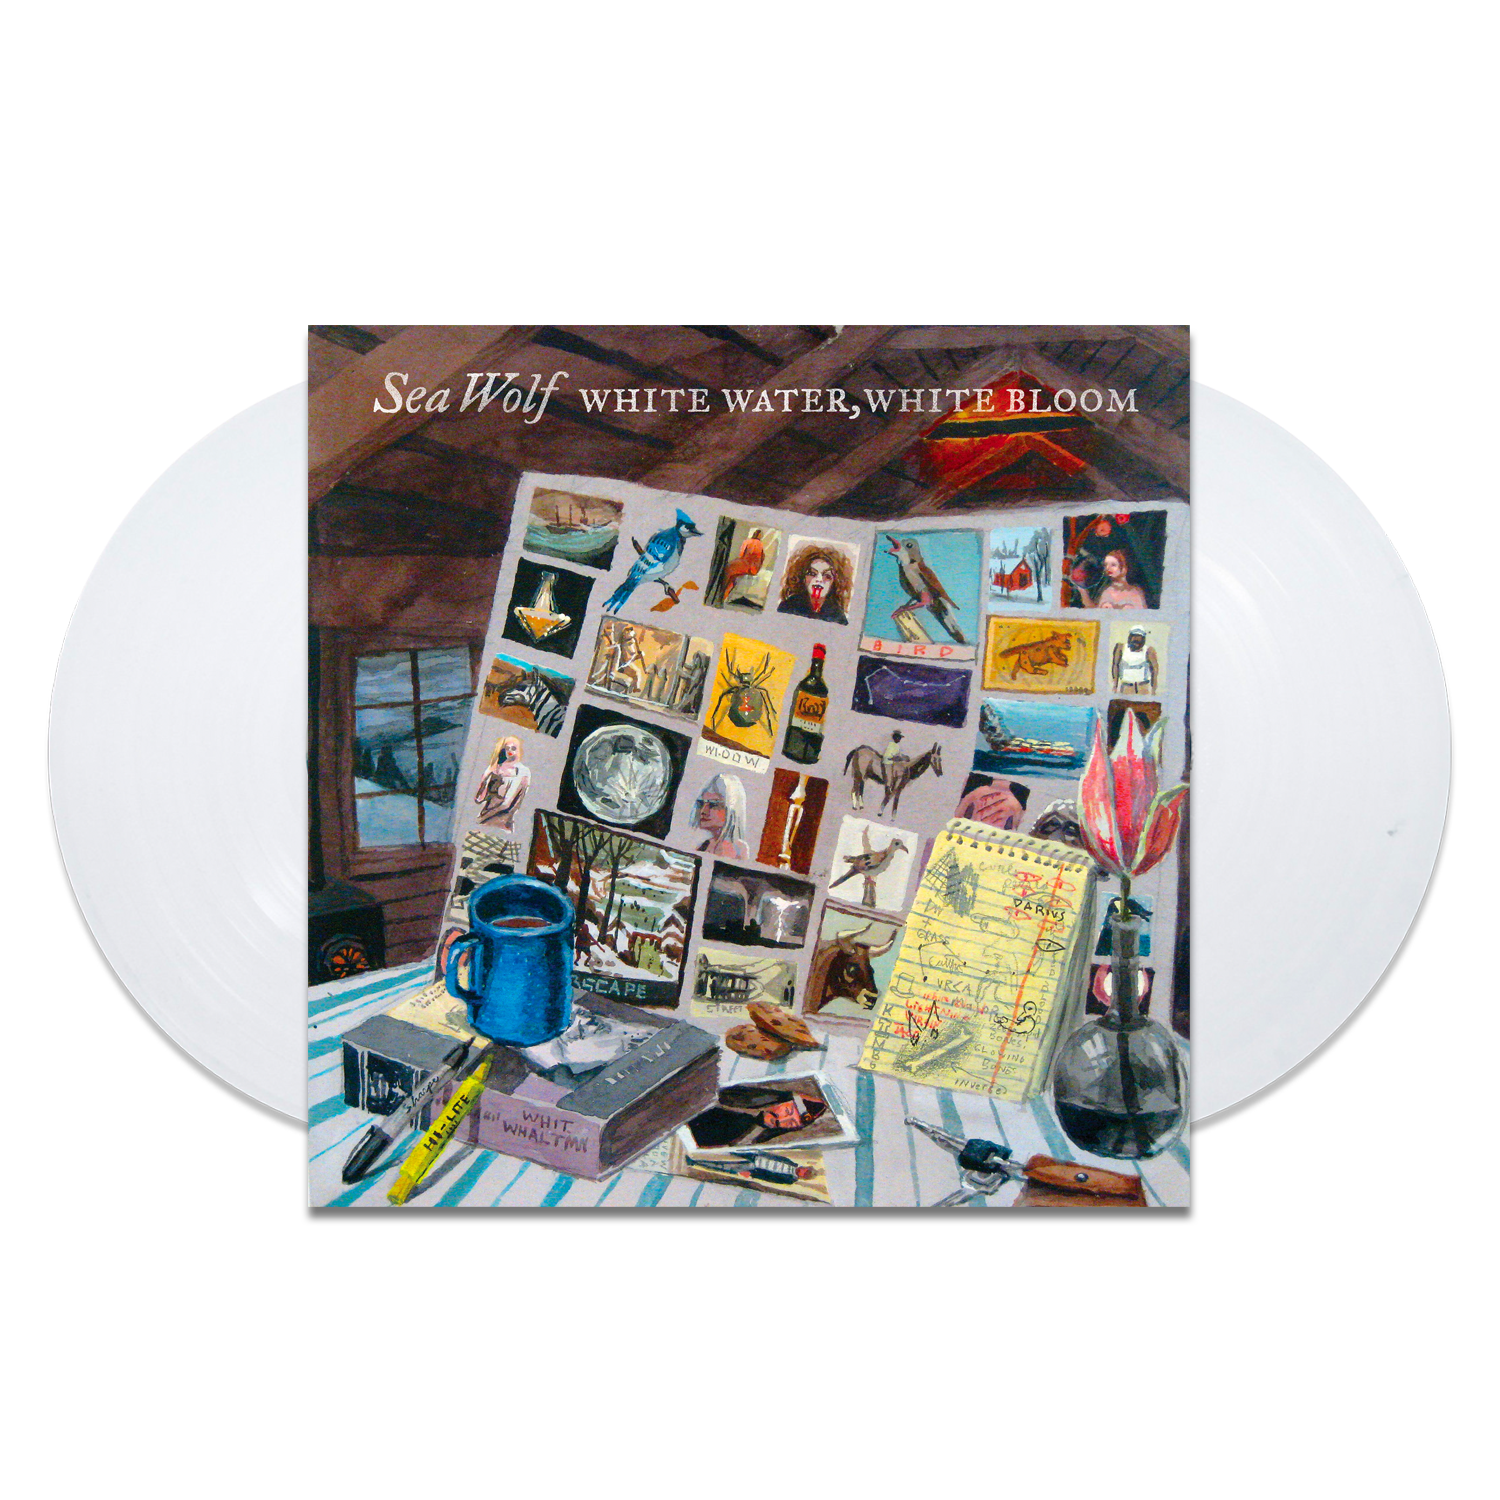 Sea Wolf - White Water, White Bloom 2 x LP – 10 Year Anniversary Edition White Vinyl